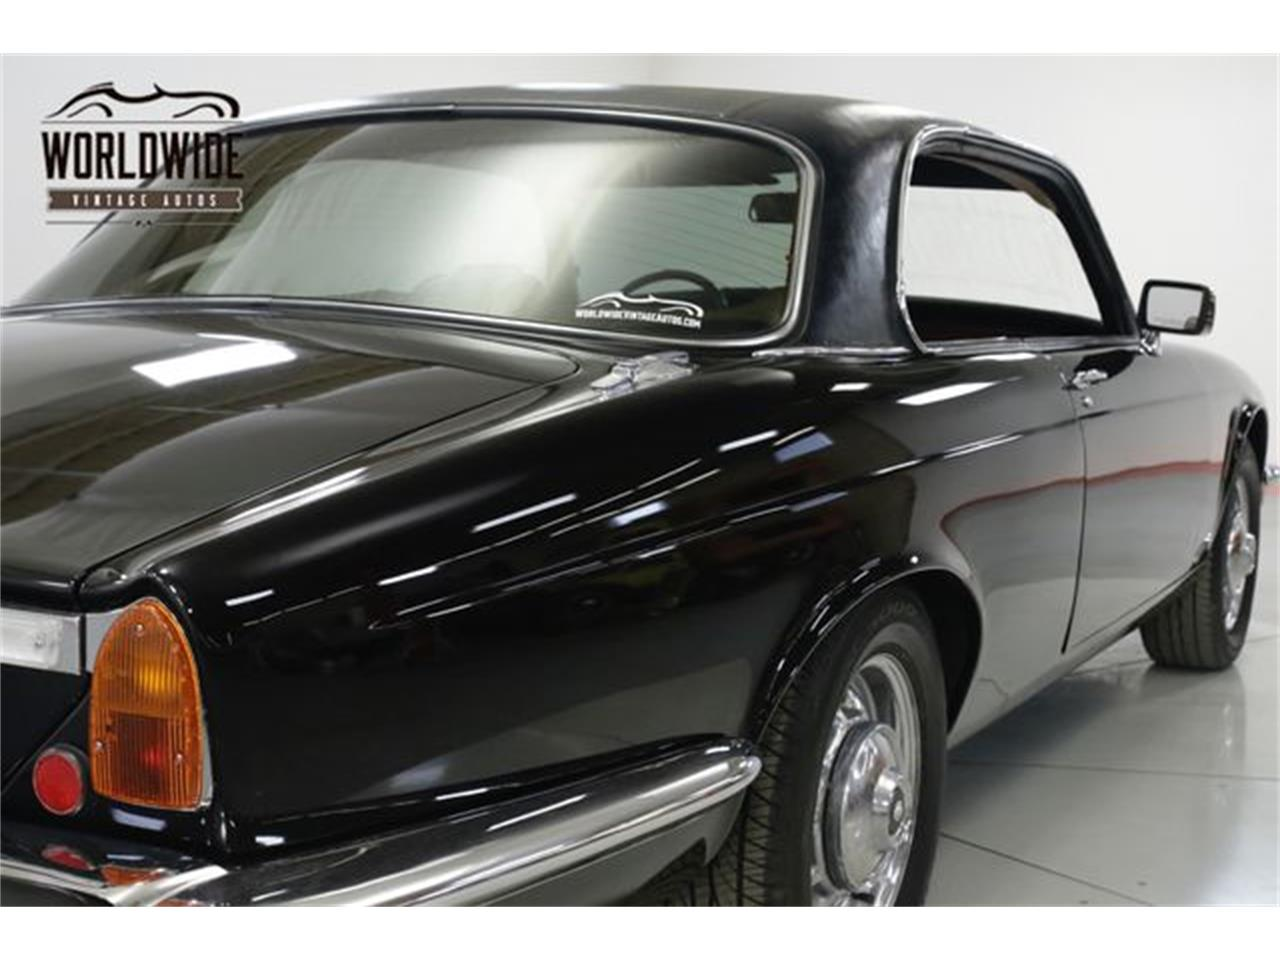 Large Picture of 1976 Jaguar XJ6 located in Denver  Colorado - $28,900.00 Offered by Worldwide Vintage Autos - PSG5